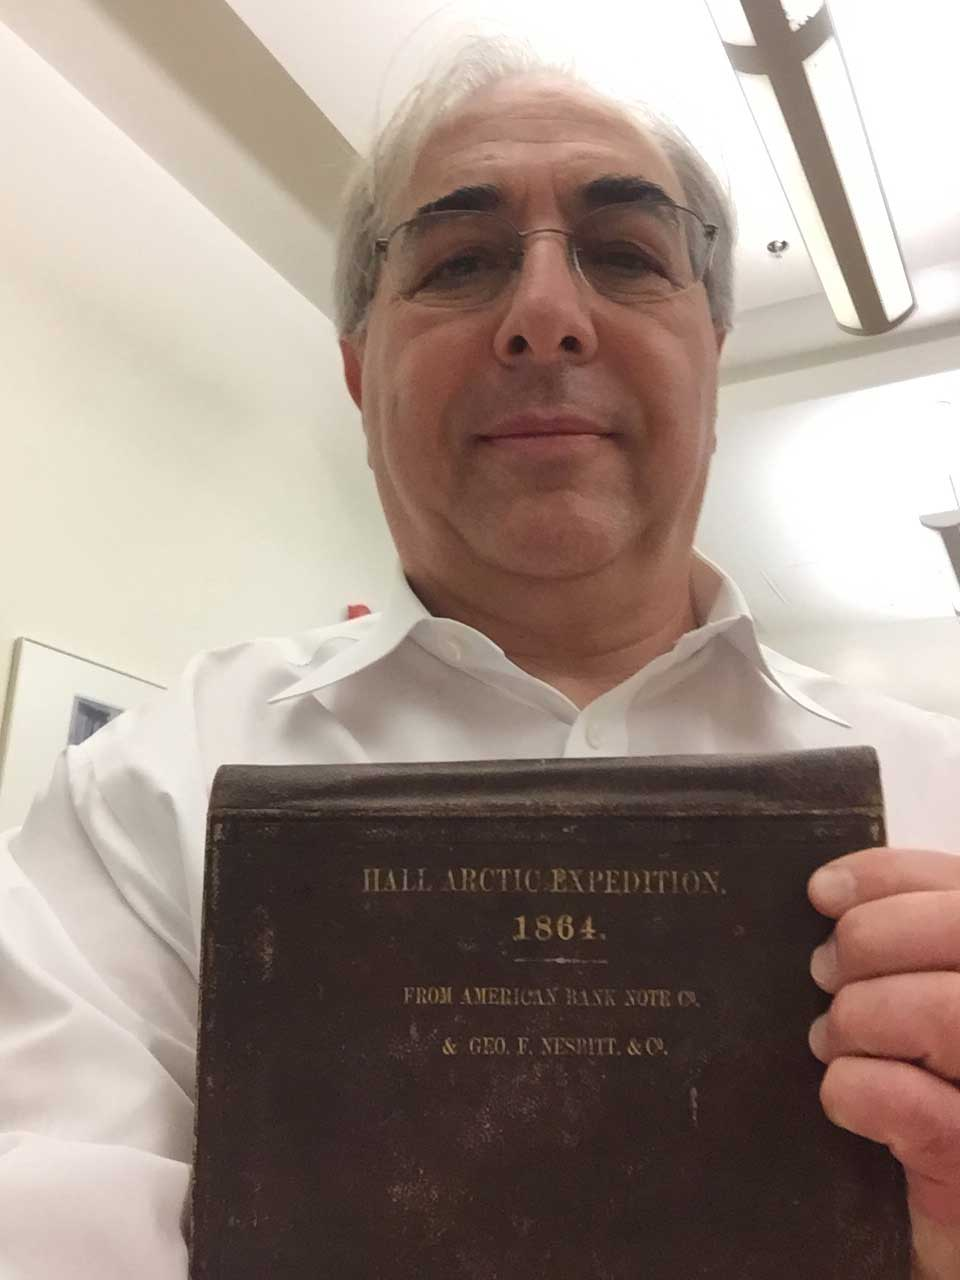 Russell Taichman holds a book detailing the 1864 Hall Arctic Expedition. Images courtesy: Russell Taichman